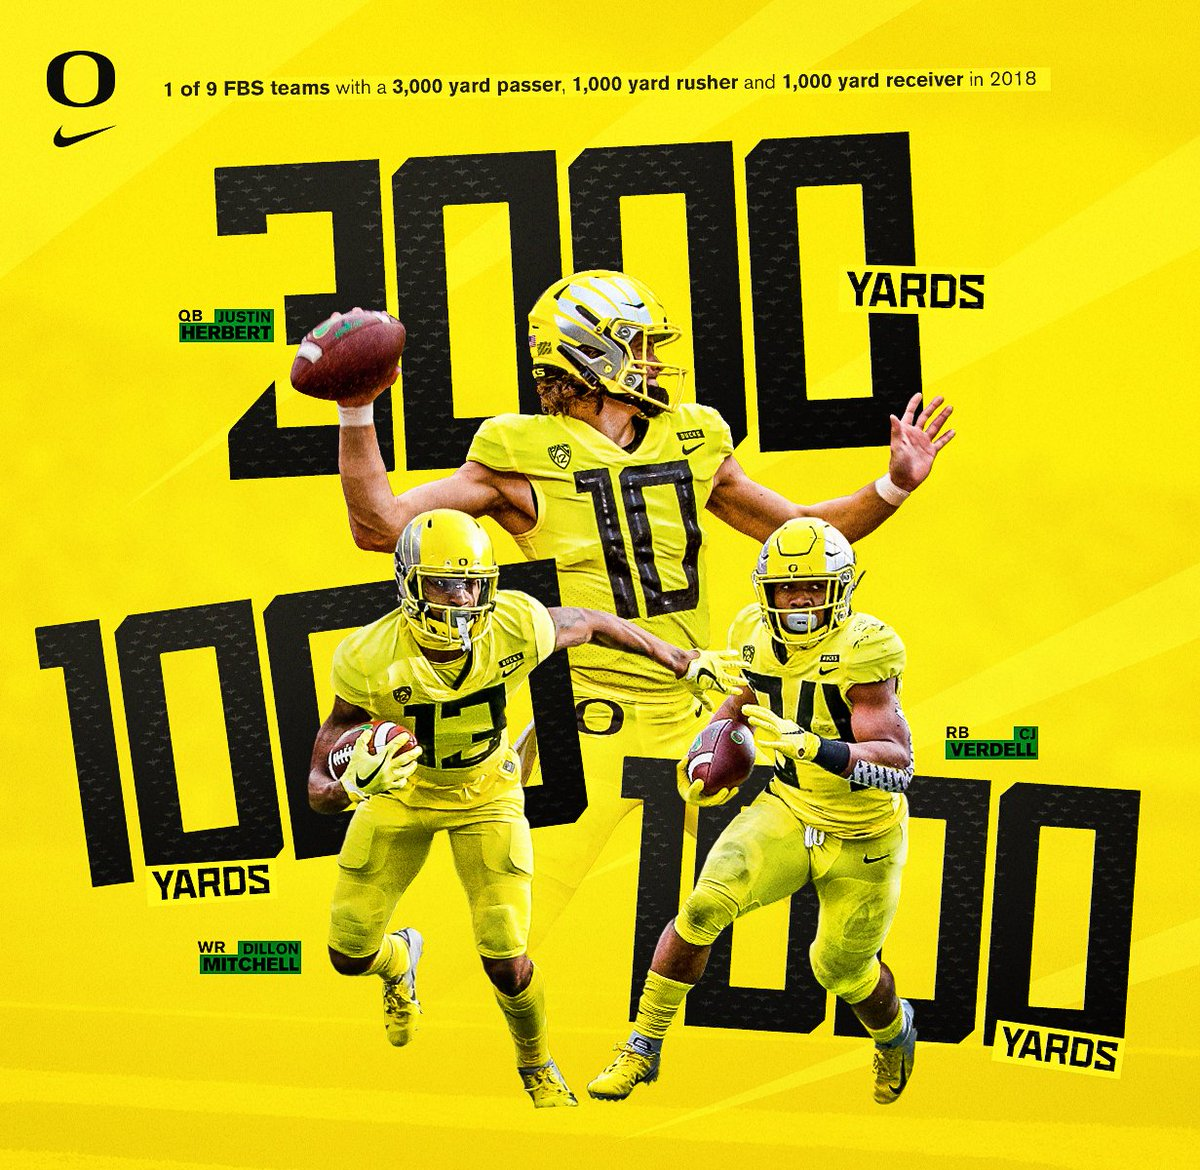 A well-balanced offensive attack.  of  FBS schools with a 3,000 yard passer, 1,000 yard rusher and 1,000 yard receiver in 2018.  #GoDucks <br>http://pic.twitter.com/eSAoaVLB3o